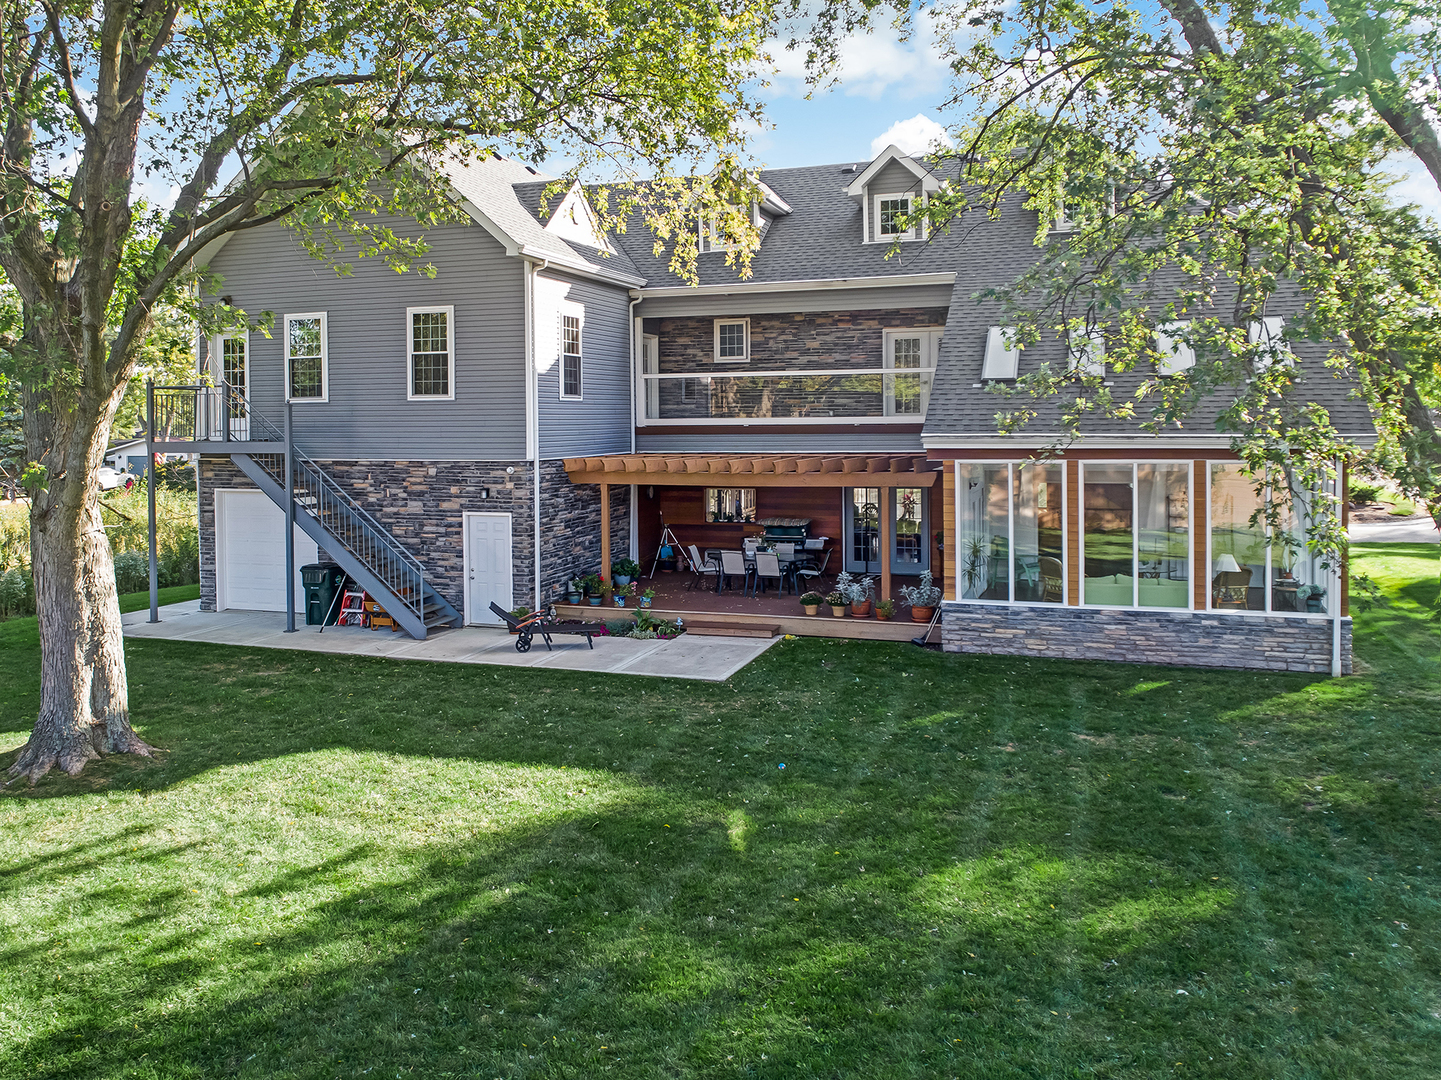 6S344 South Jackson, Hinsdale, Illinois, 60521